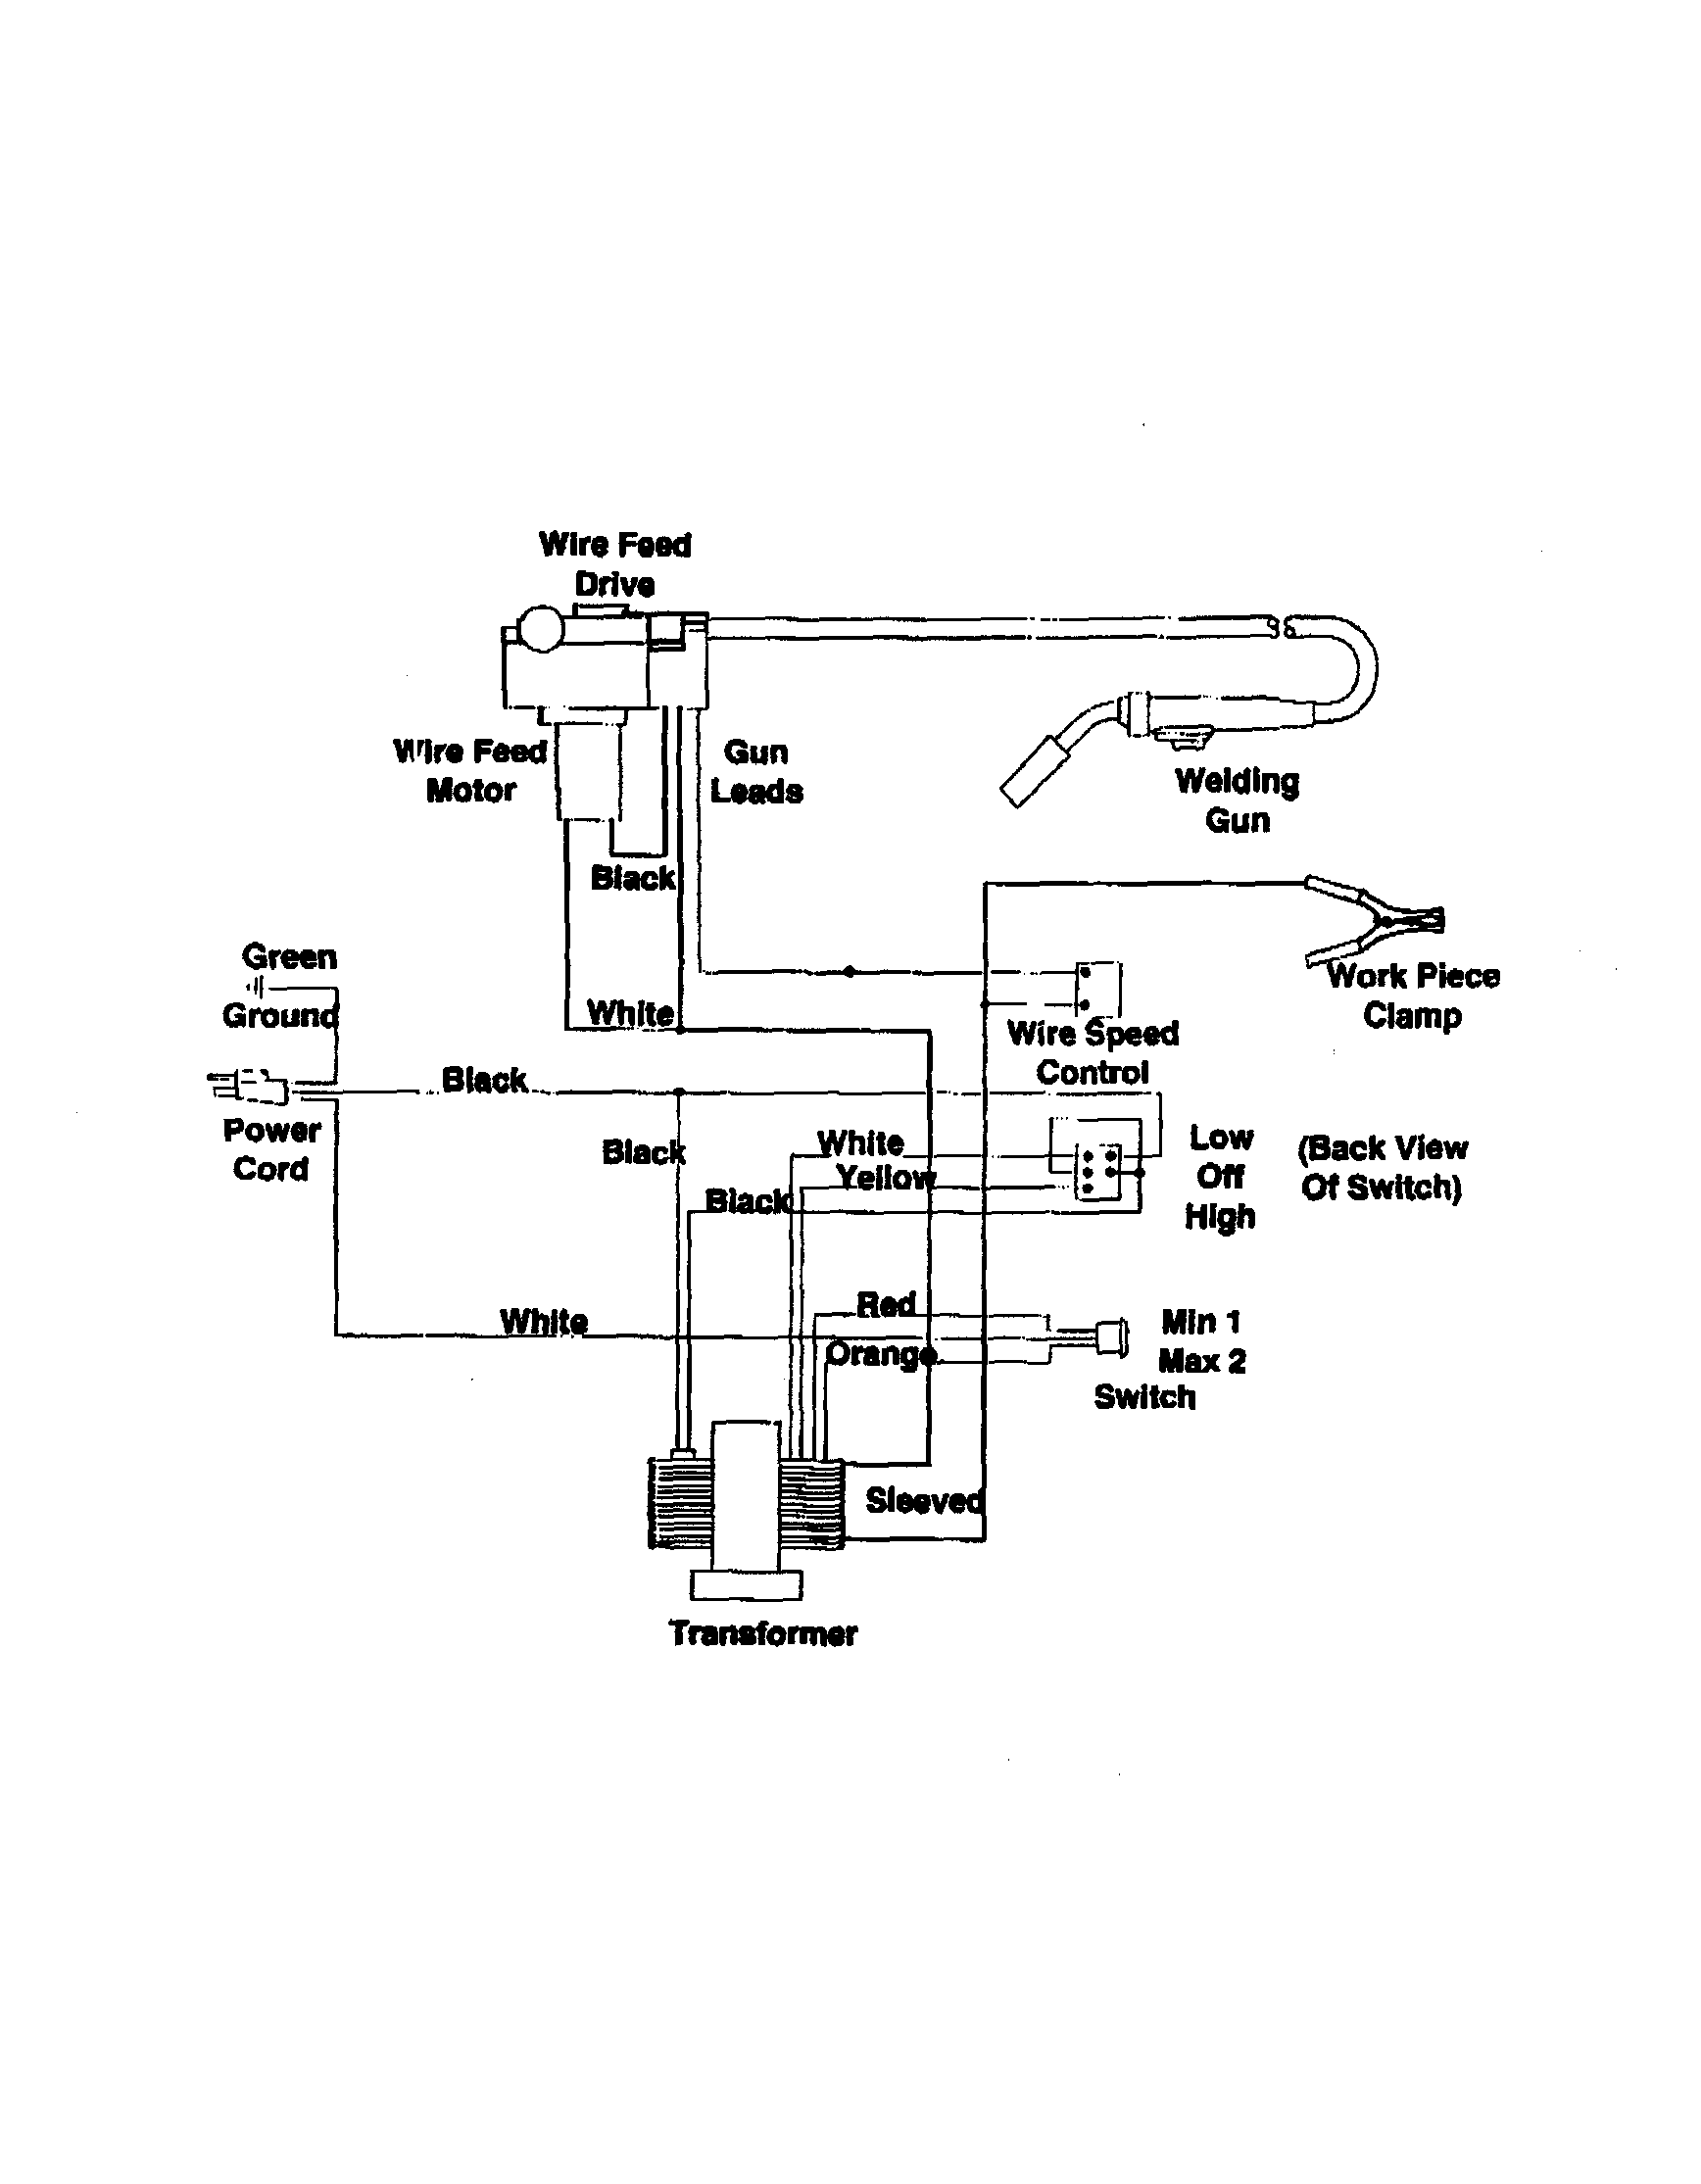 [DIAGRAM] Wiring Diagram Sears 397 19340 FULL Version HD